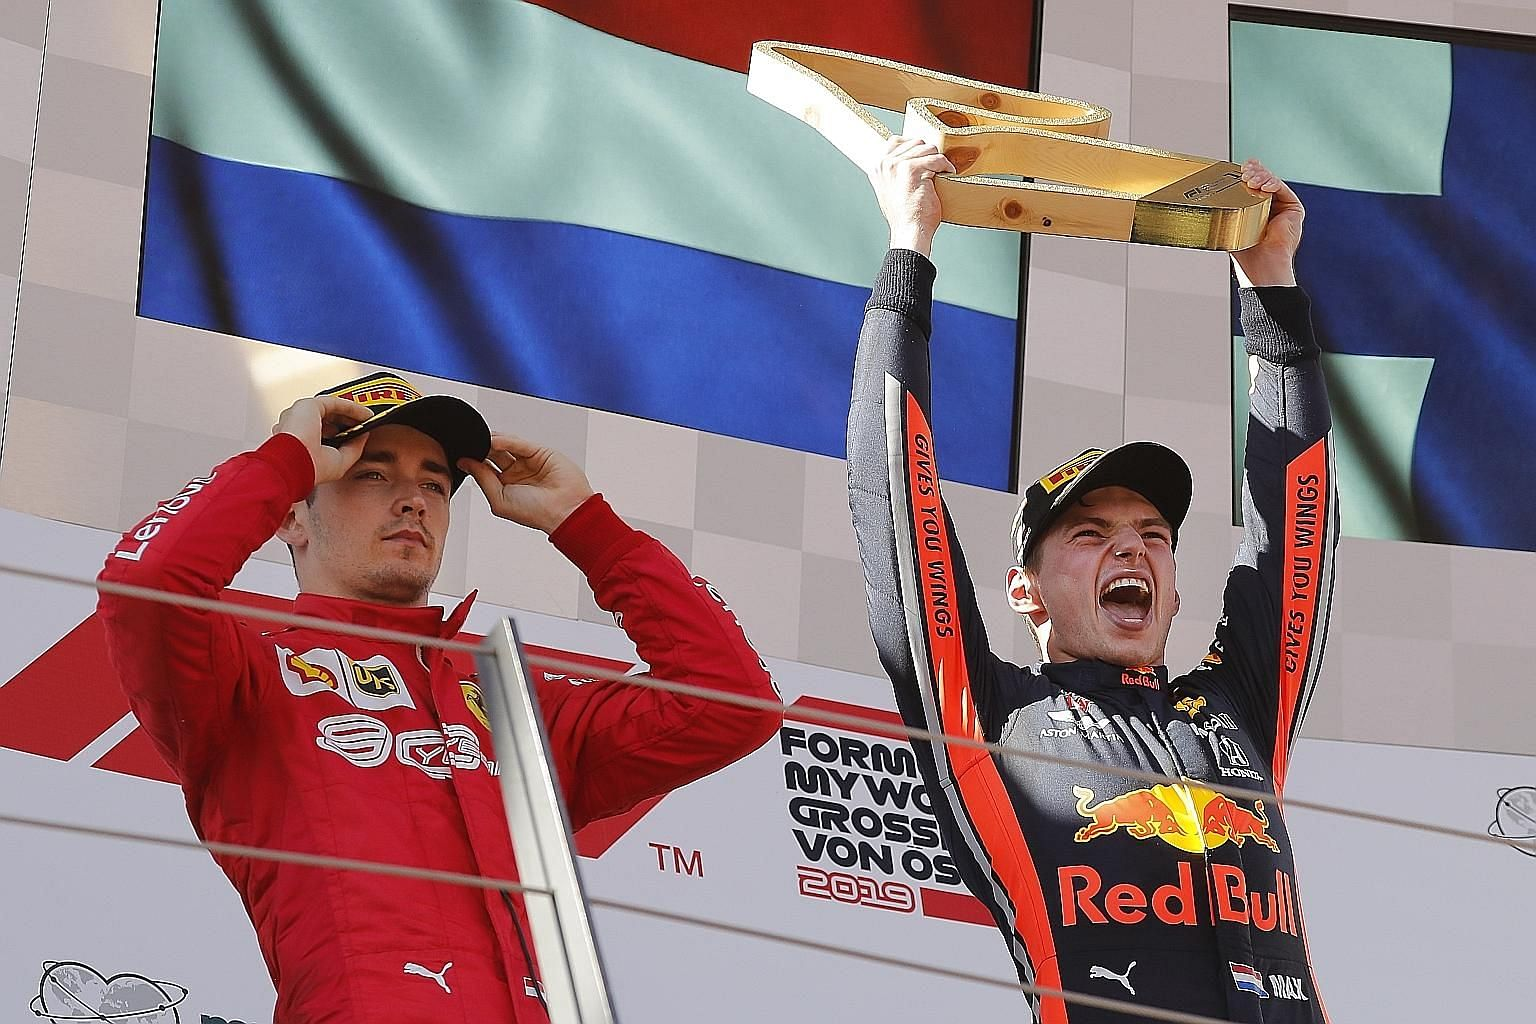 Red Bull's Max Verstappen celebrating with the Austrian Grand Prix trophy, his sixth F1 win, after coming from behind to deny Charles Leclerc of Ferrari his first victory on Sunday. PHOTO: EPA-EFE